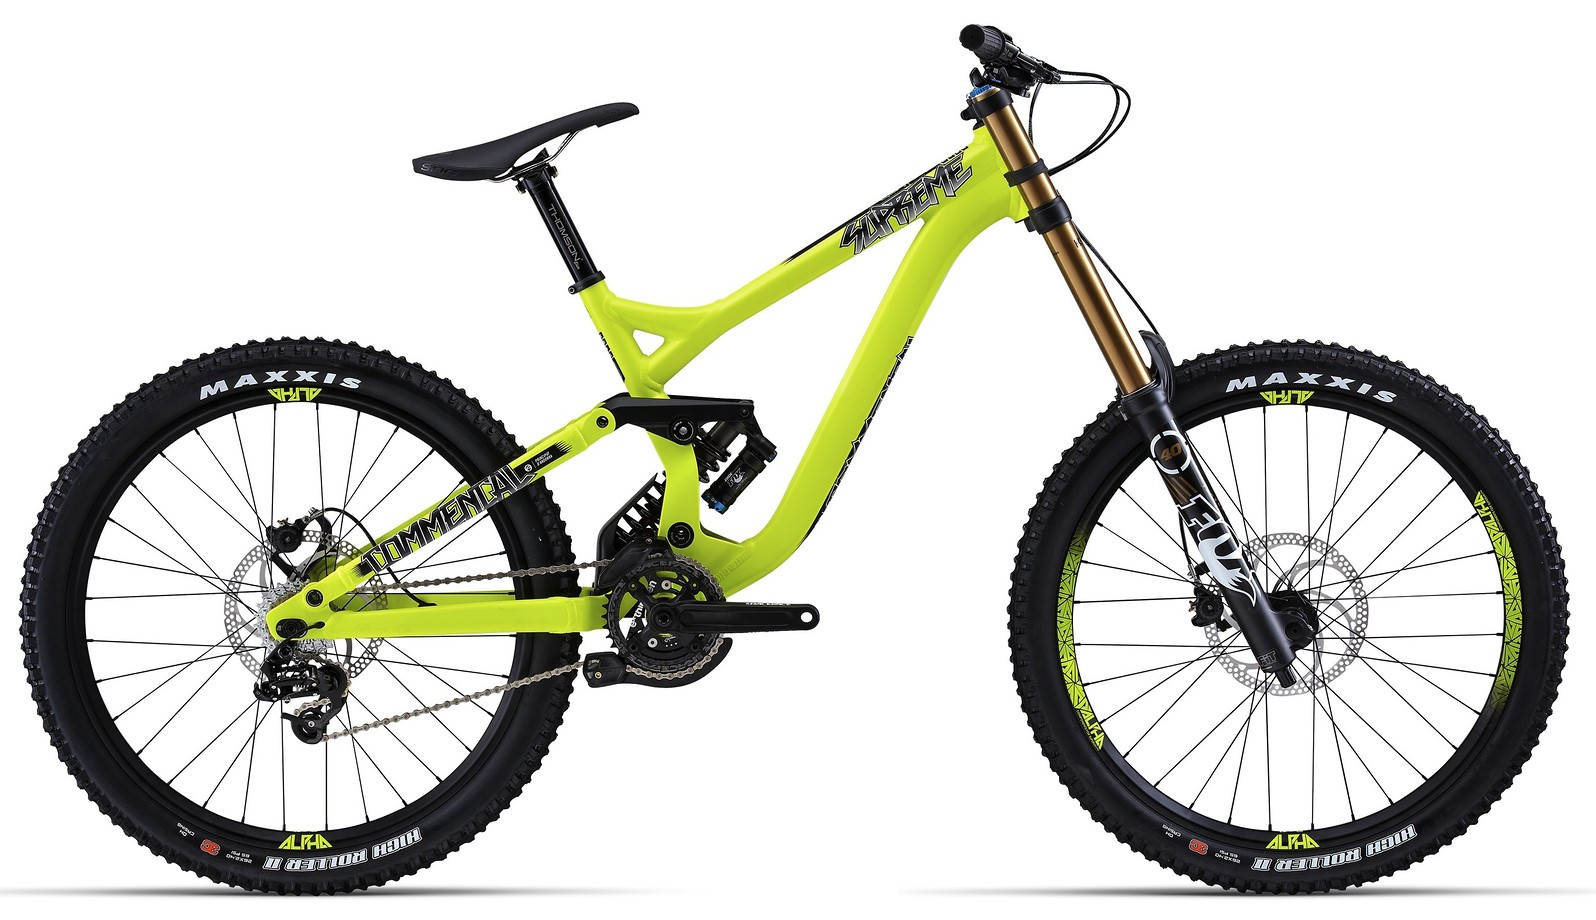 2014 Commencal Supreme Dh World Cup Bike Reviews